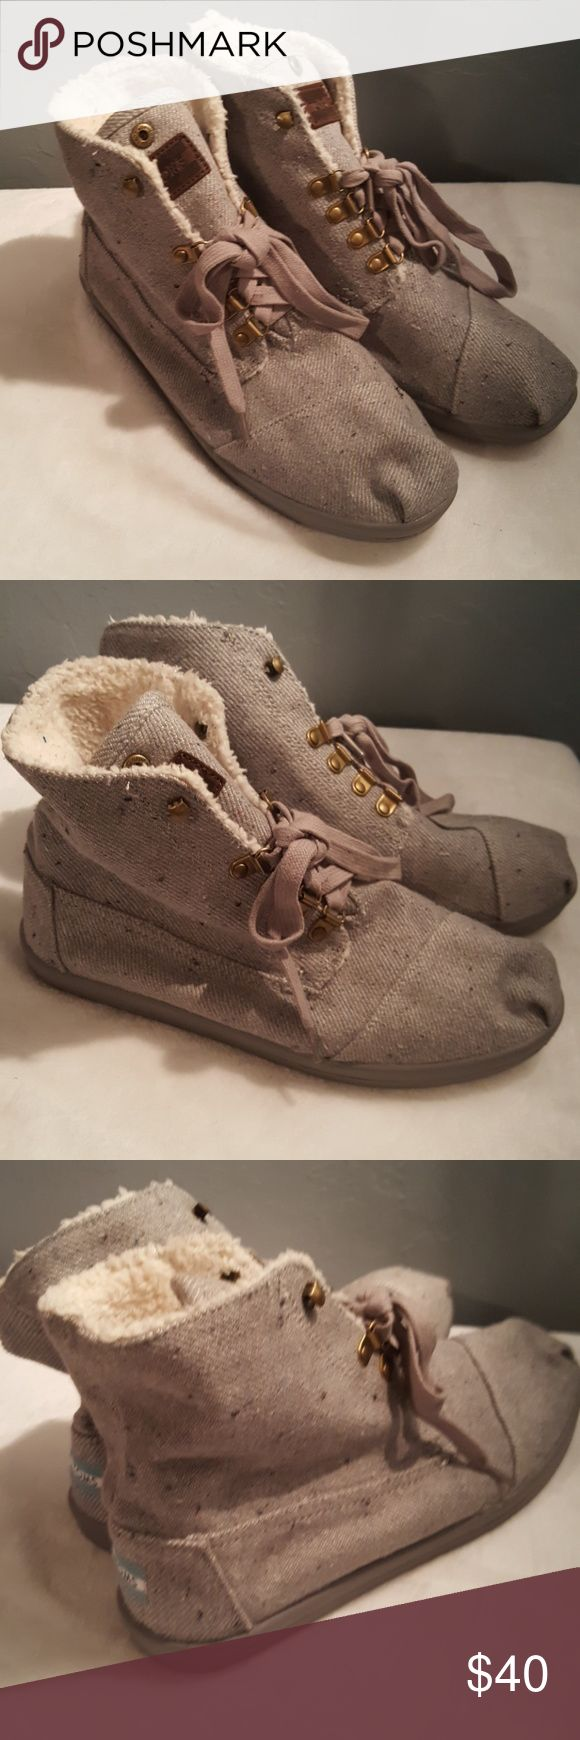 Toms Botas Chukka Faux Shearling Lace-up Boots Canvas Faux Shearling lined Very soft lining In great condition Comfy Toms Shoes